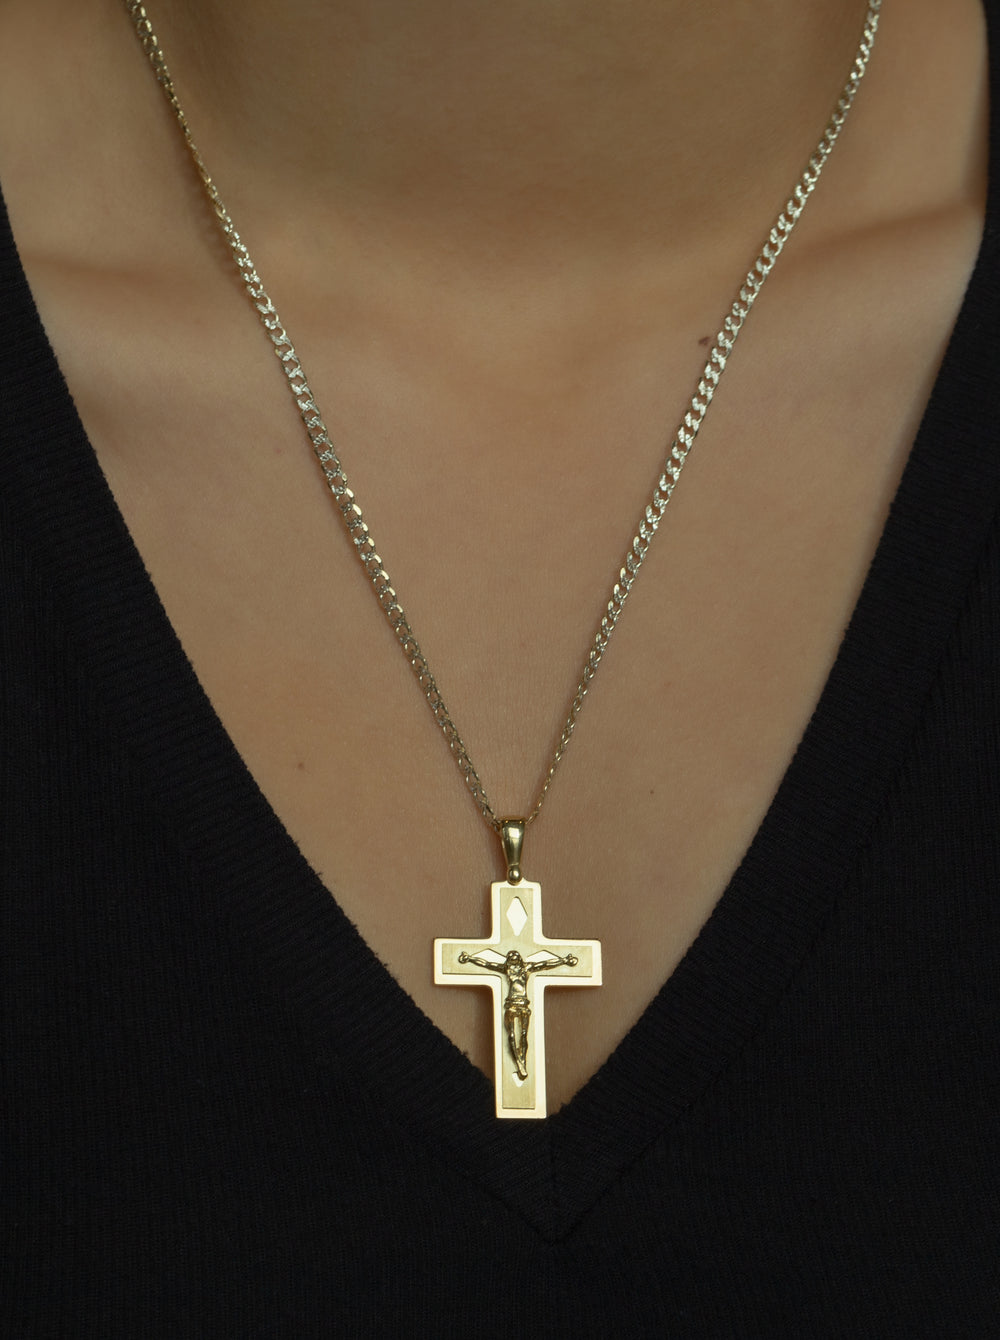 THE MAIORI CROSS NECKLACE